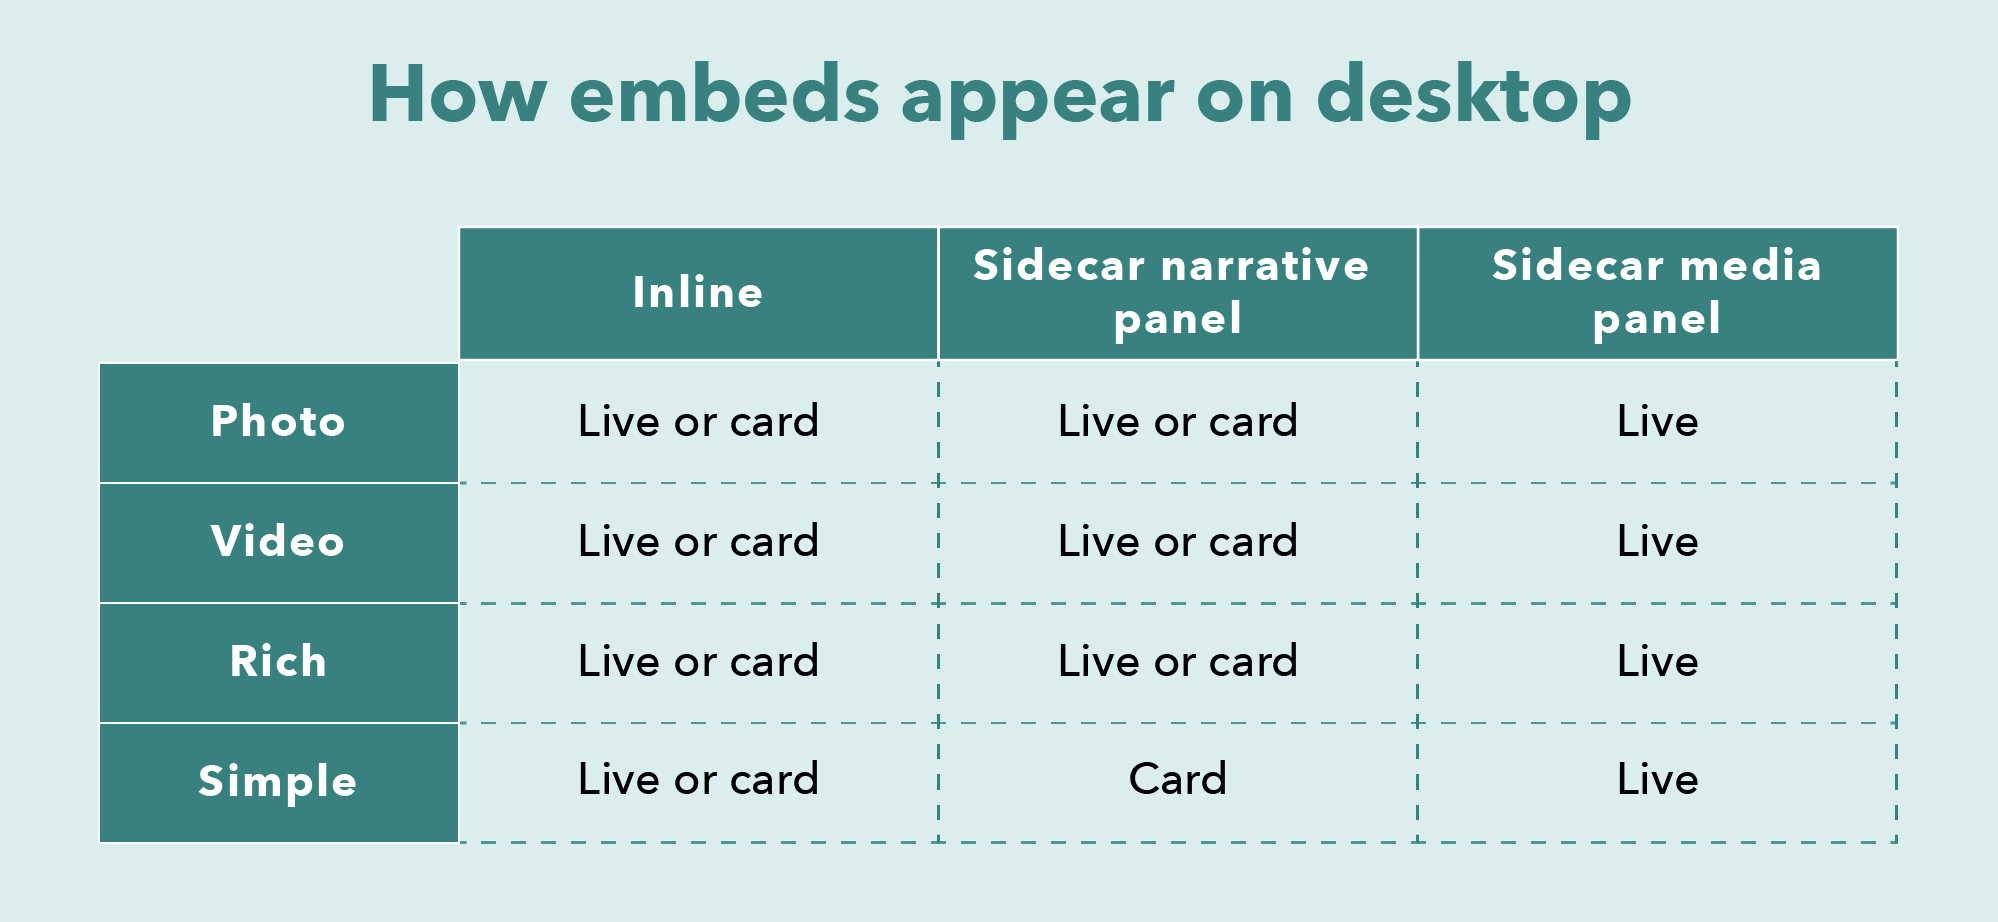 A table that breaks down how different types of embeds appear on PCs depending on where they are placed in a story